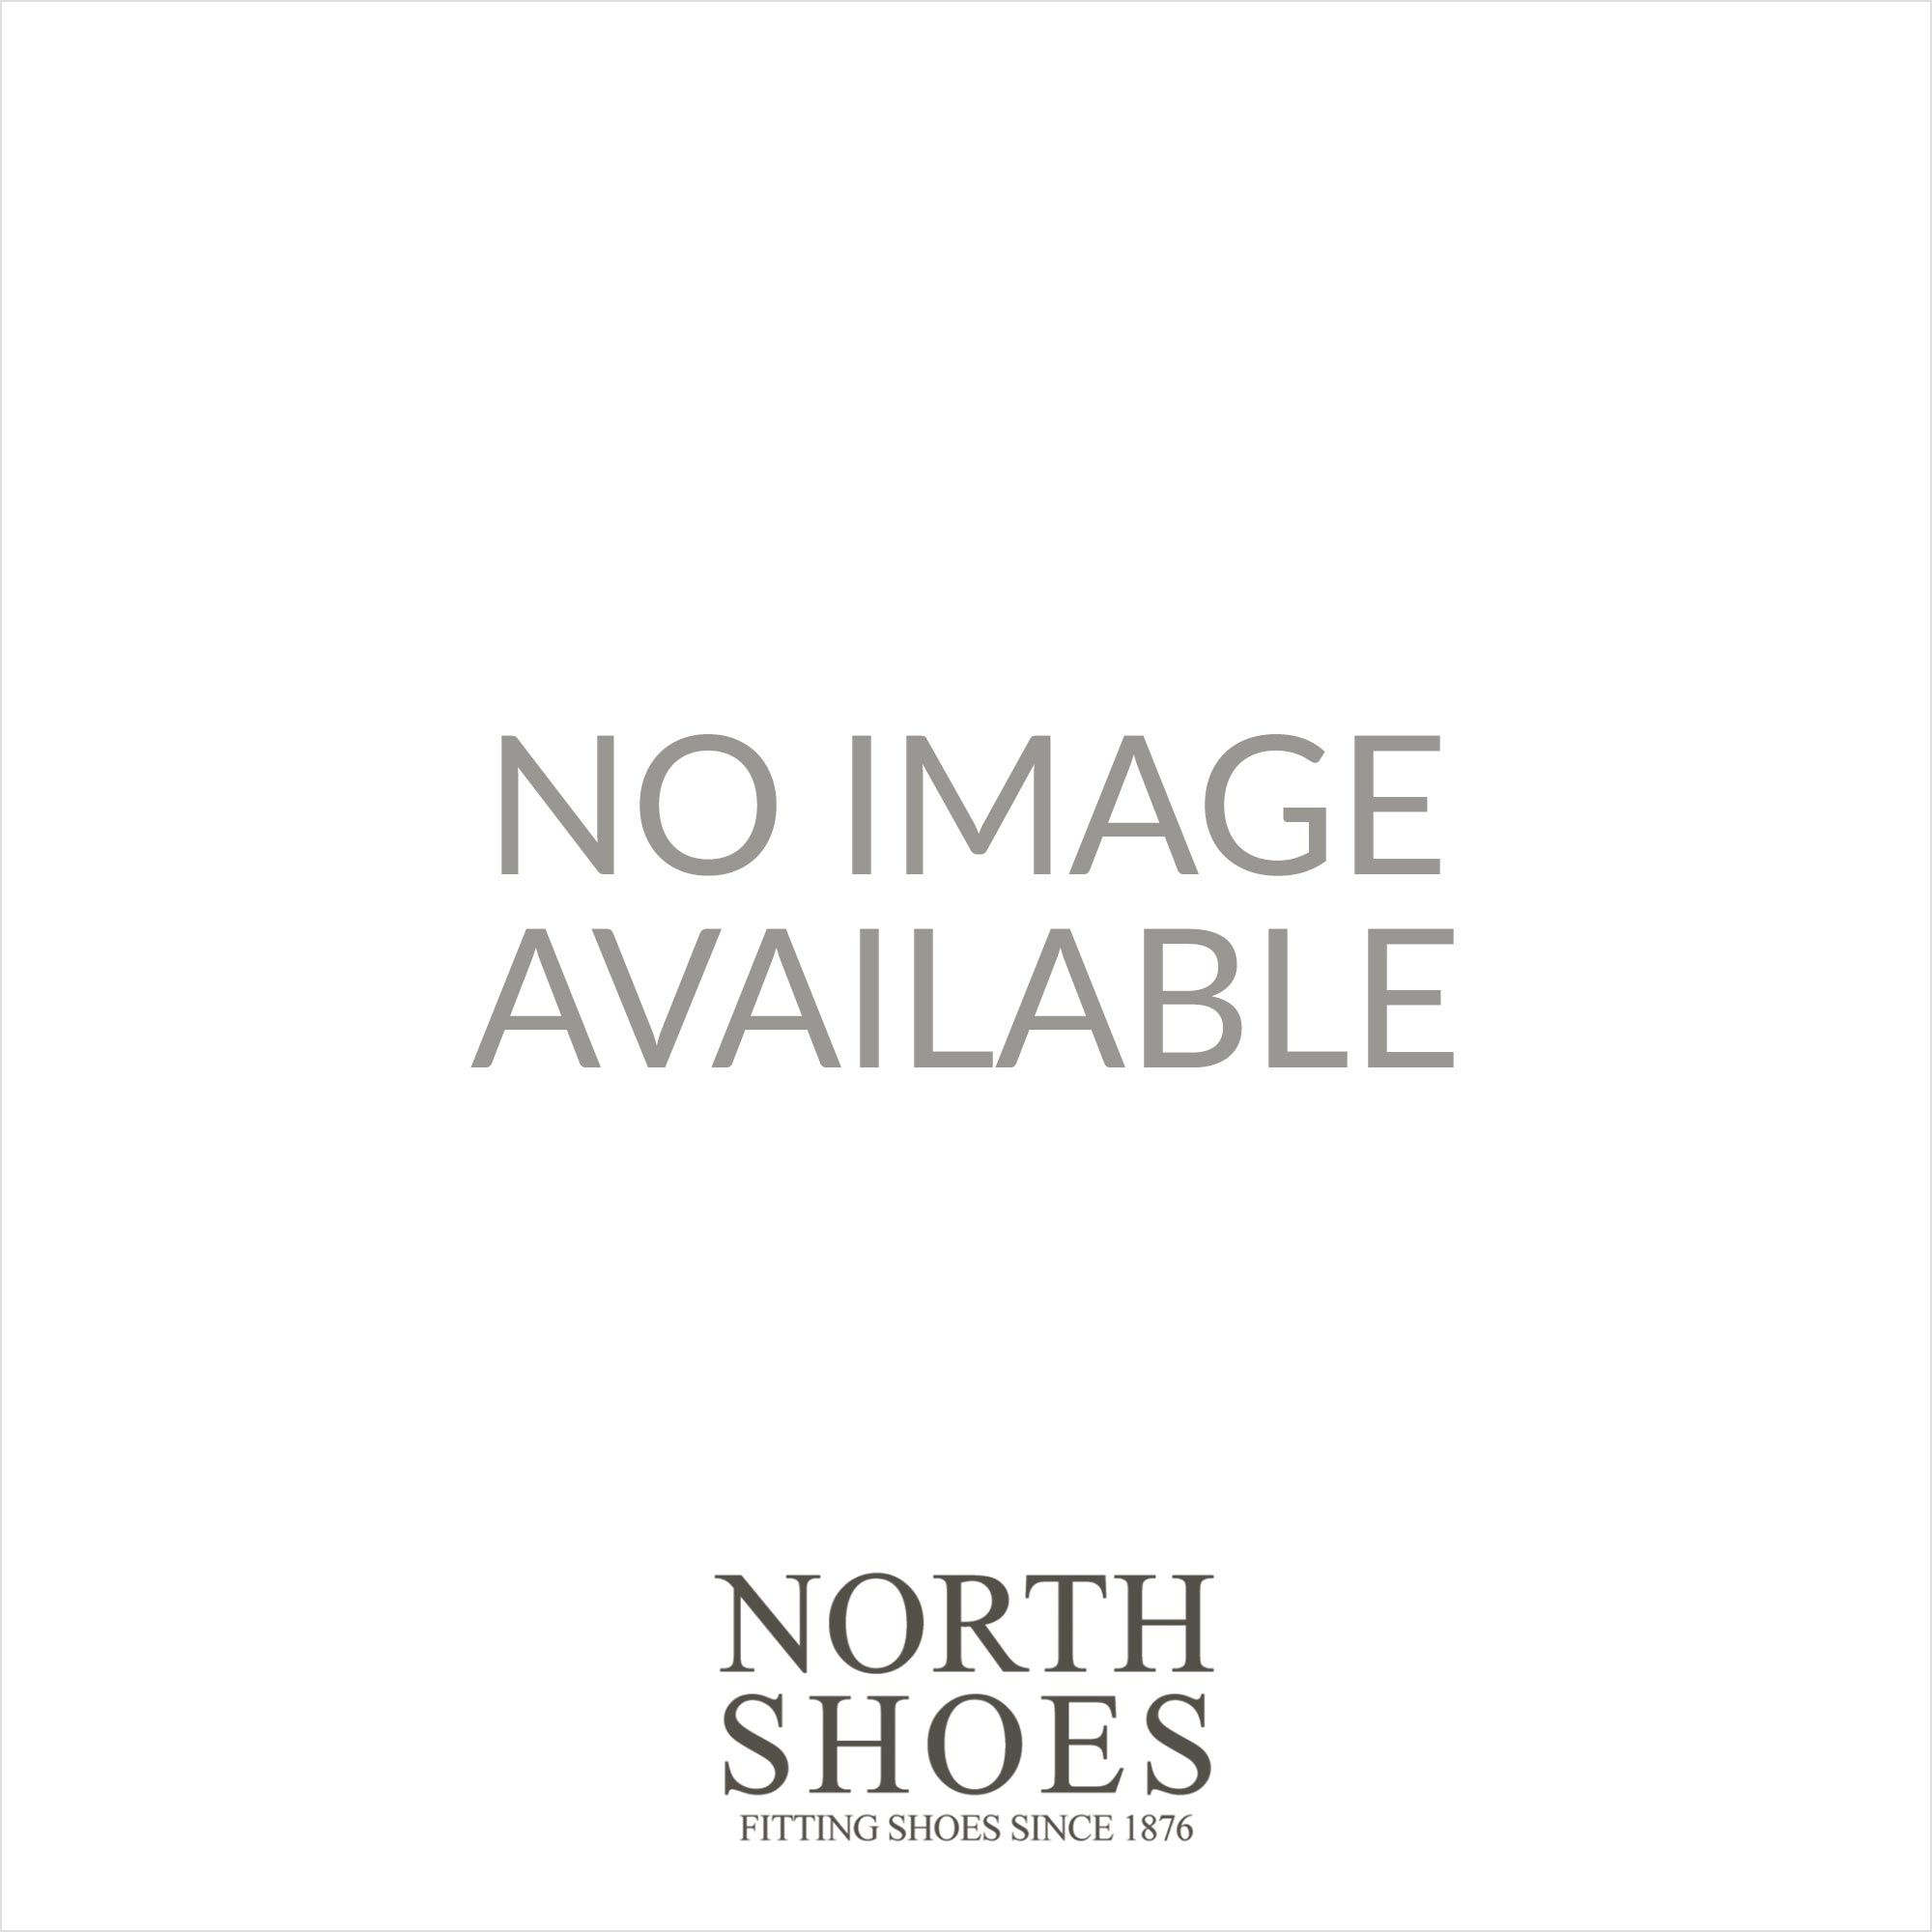 caf5cc93ae7d ... Toni Pons Tarbes Navy And White Striped Canvas Womens Wedge Espadrille  Sandal ...